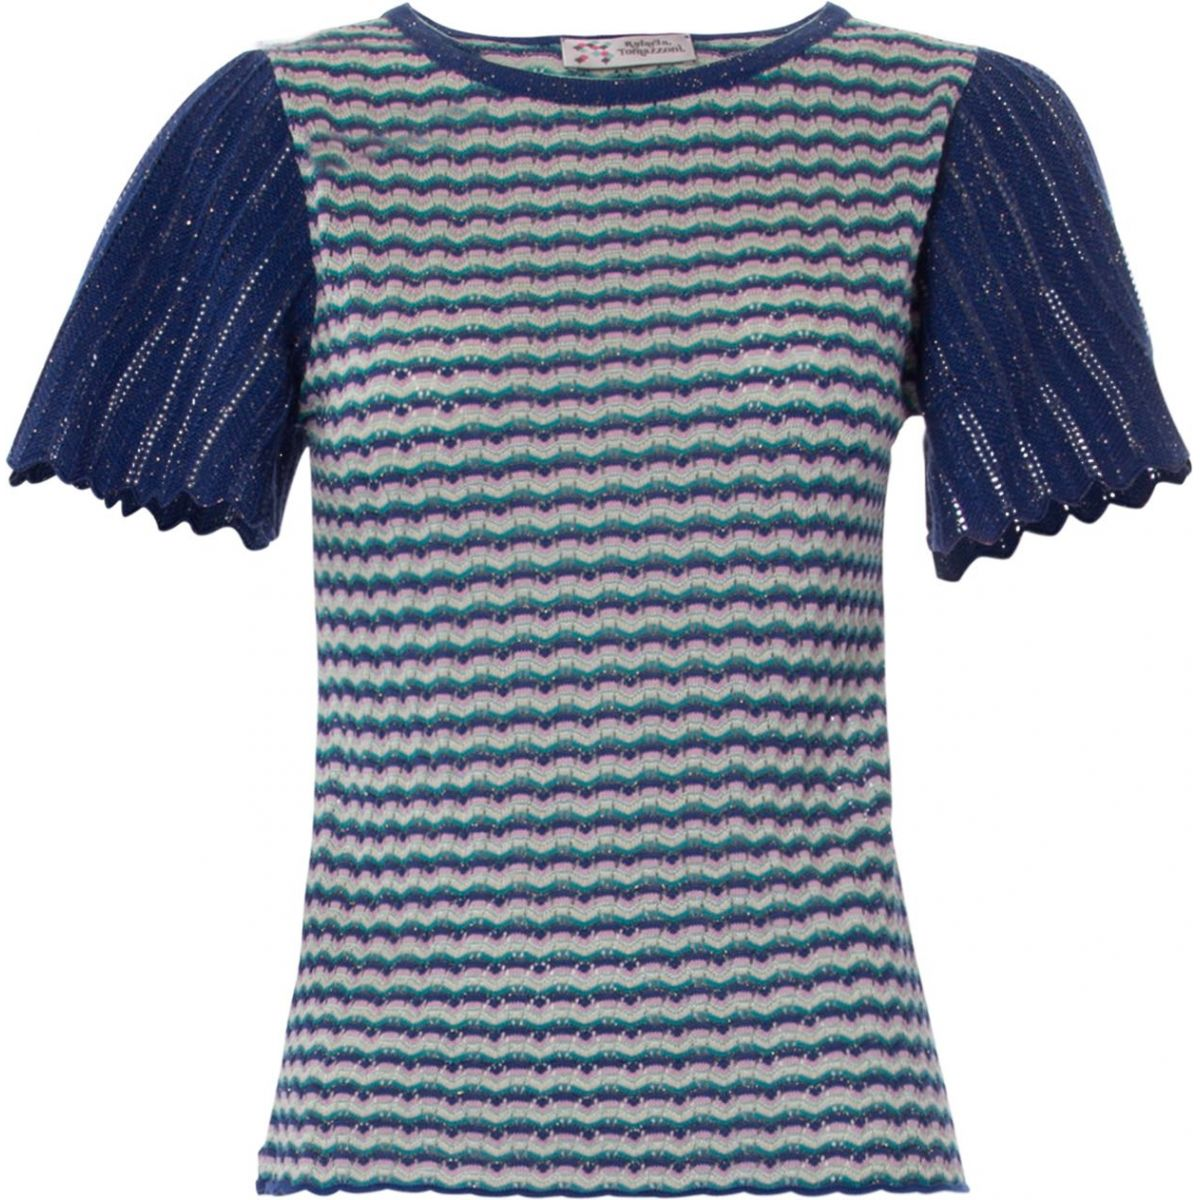 blusa_ponto_mini_zig_zag_royal_34_1_20170117145939